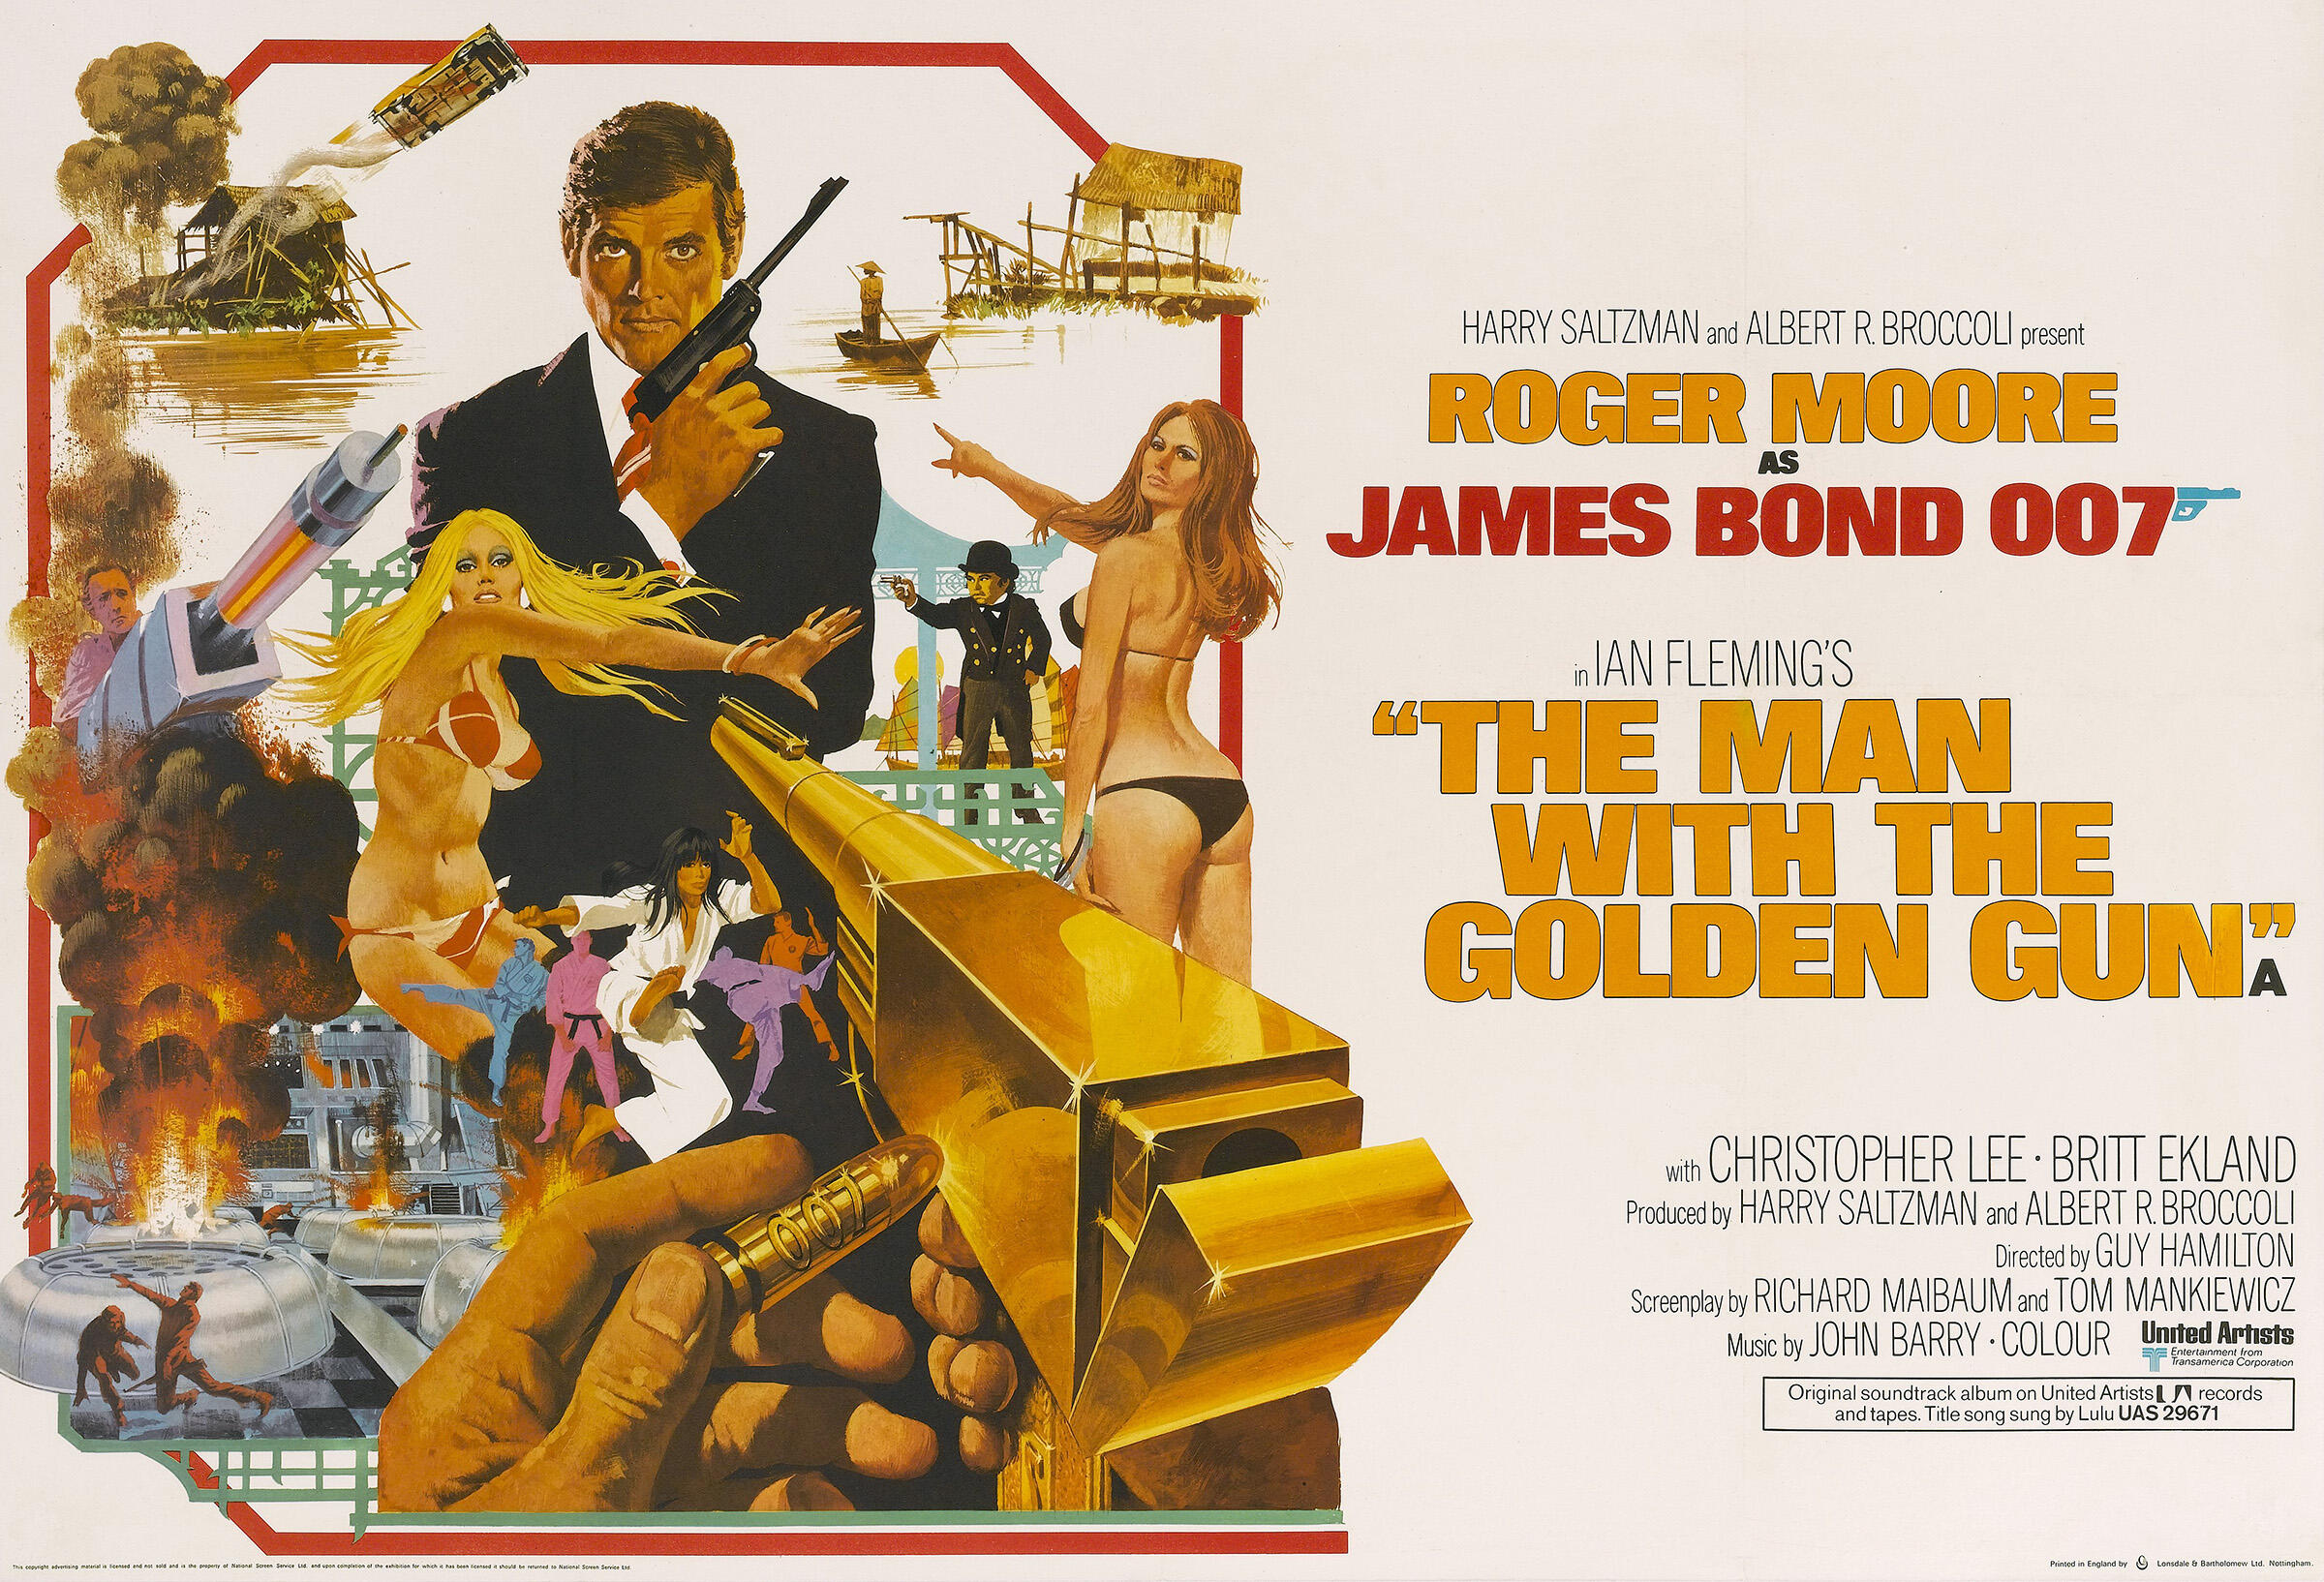 25. The Man with the Golden Gun